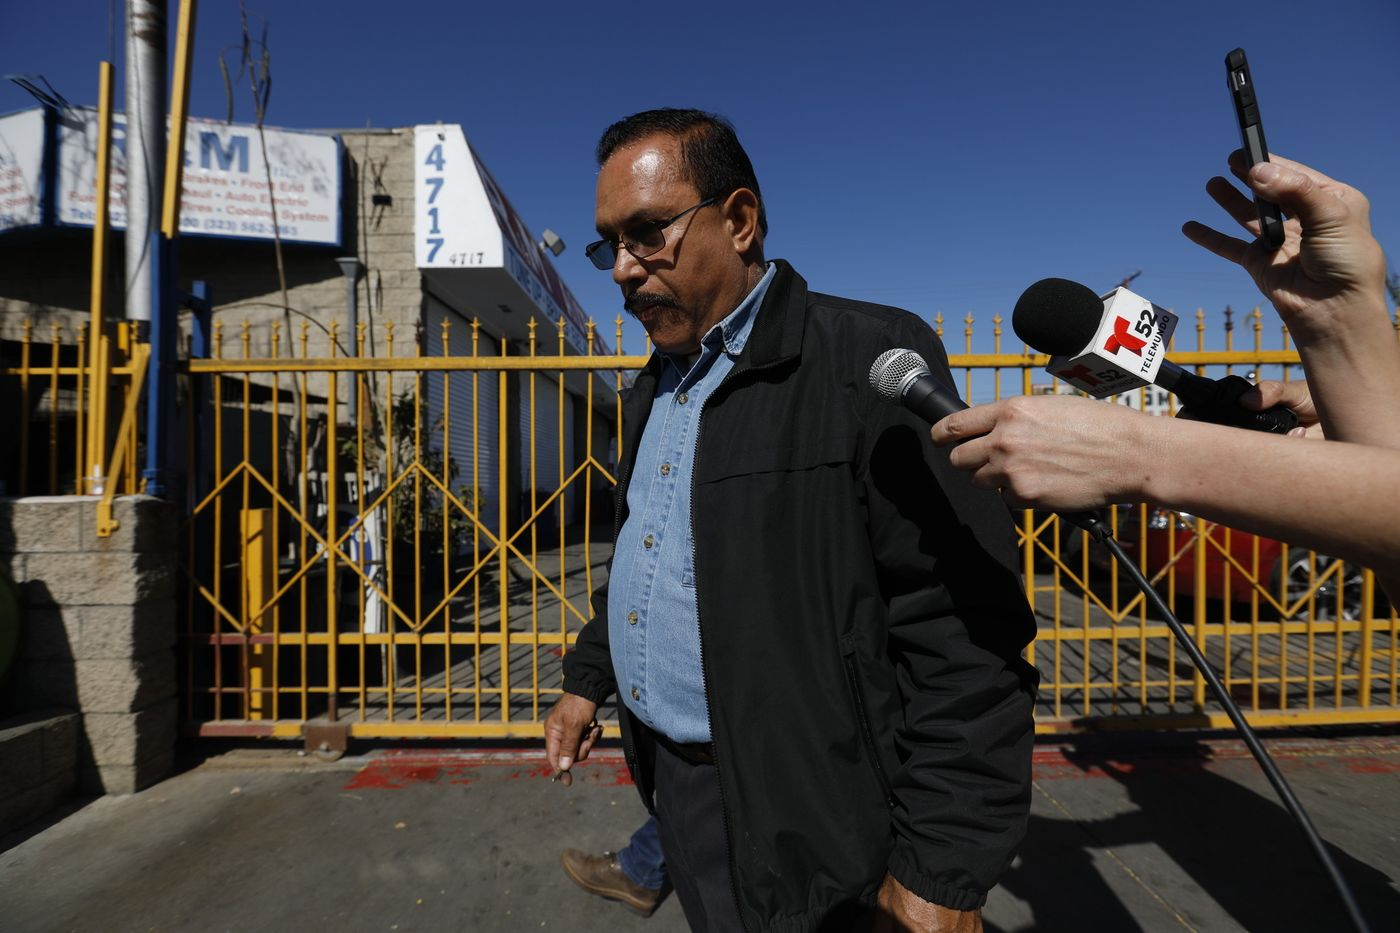 Maywood Mayor Ramon Medina is asked questions by the media after investigators from the Los Angeles County District Attorney's Office removed computers and files from his auto shop on Feb. 8, 2018. (Credit: Gary Coronado / Los Angeles Times)